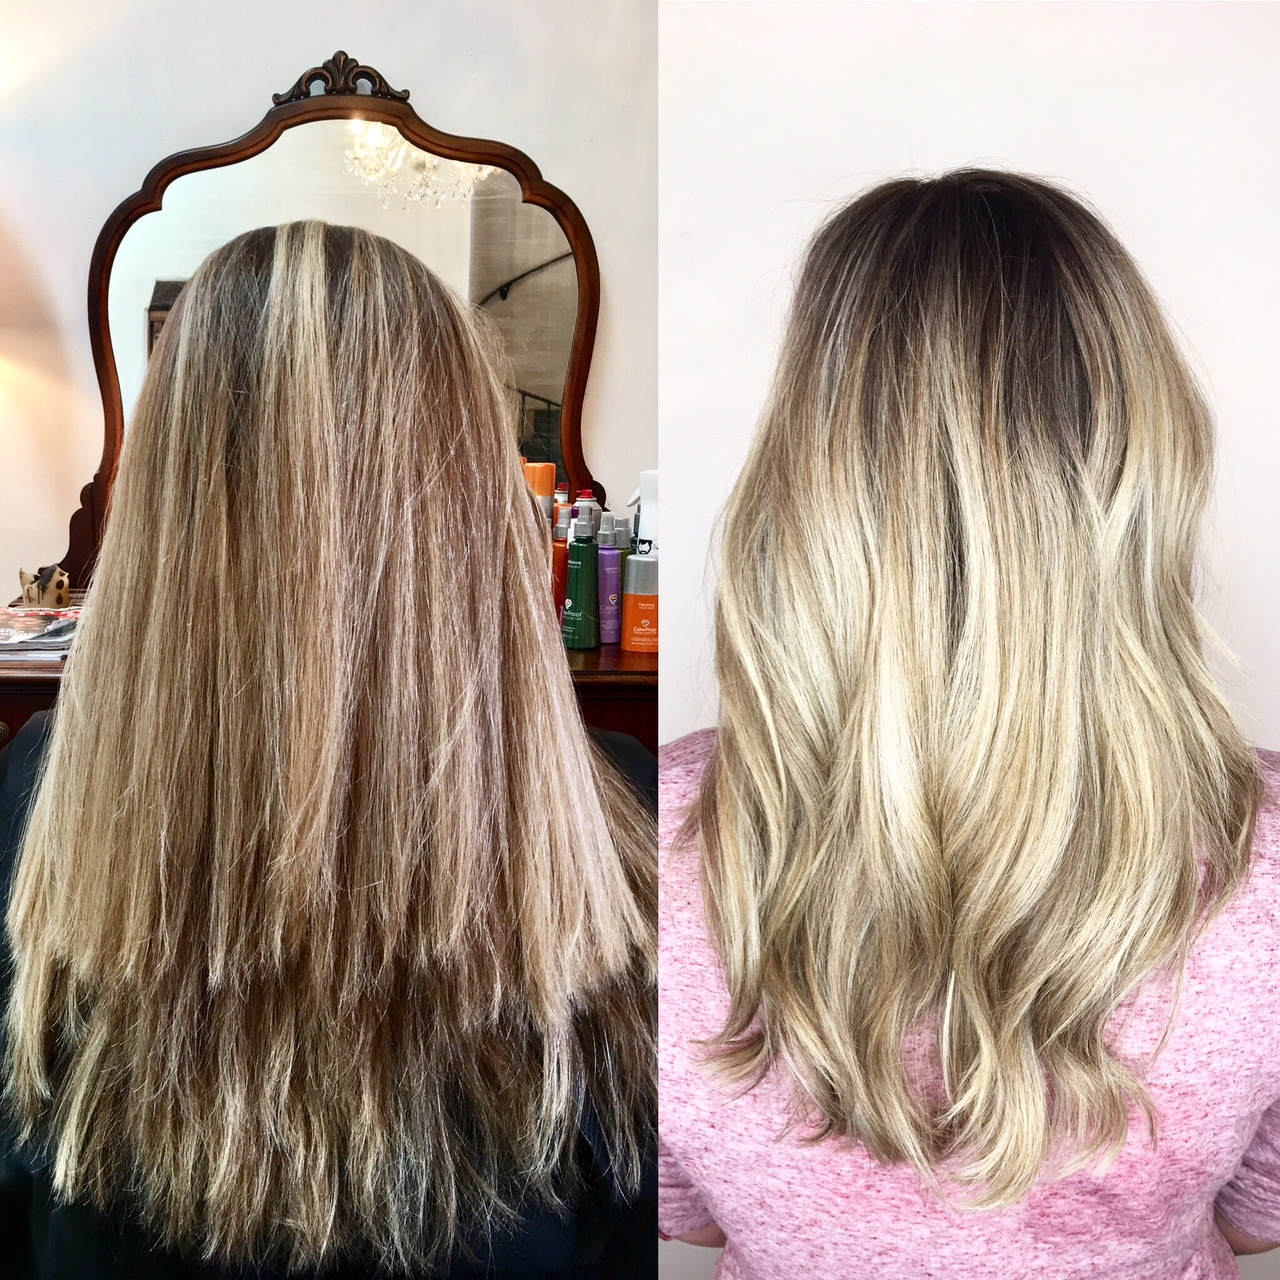 MAKEOVER: Blending Cut And Color For A Magnificent Finish